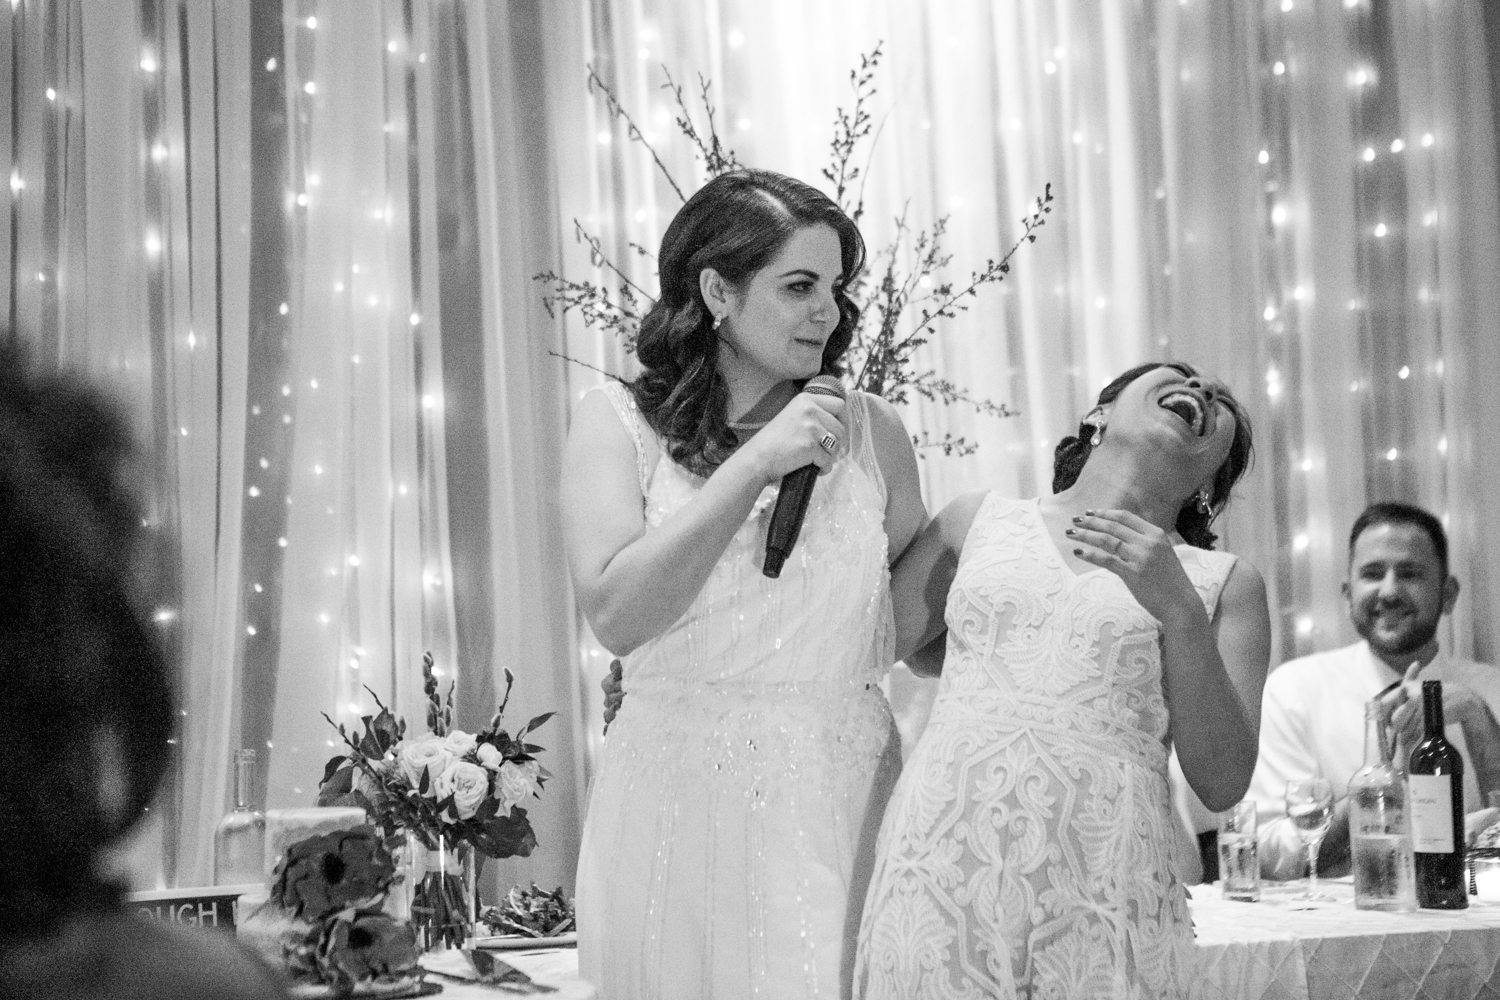 Brooklyn wedding toast | photographed by Amber Marlow, NYC